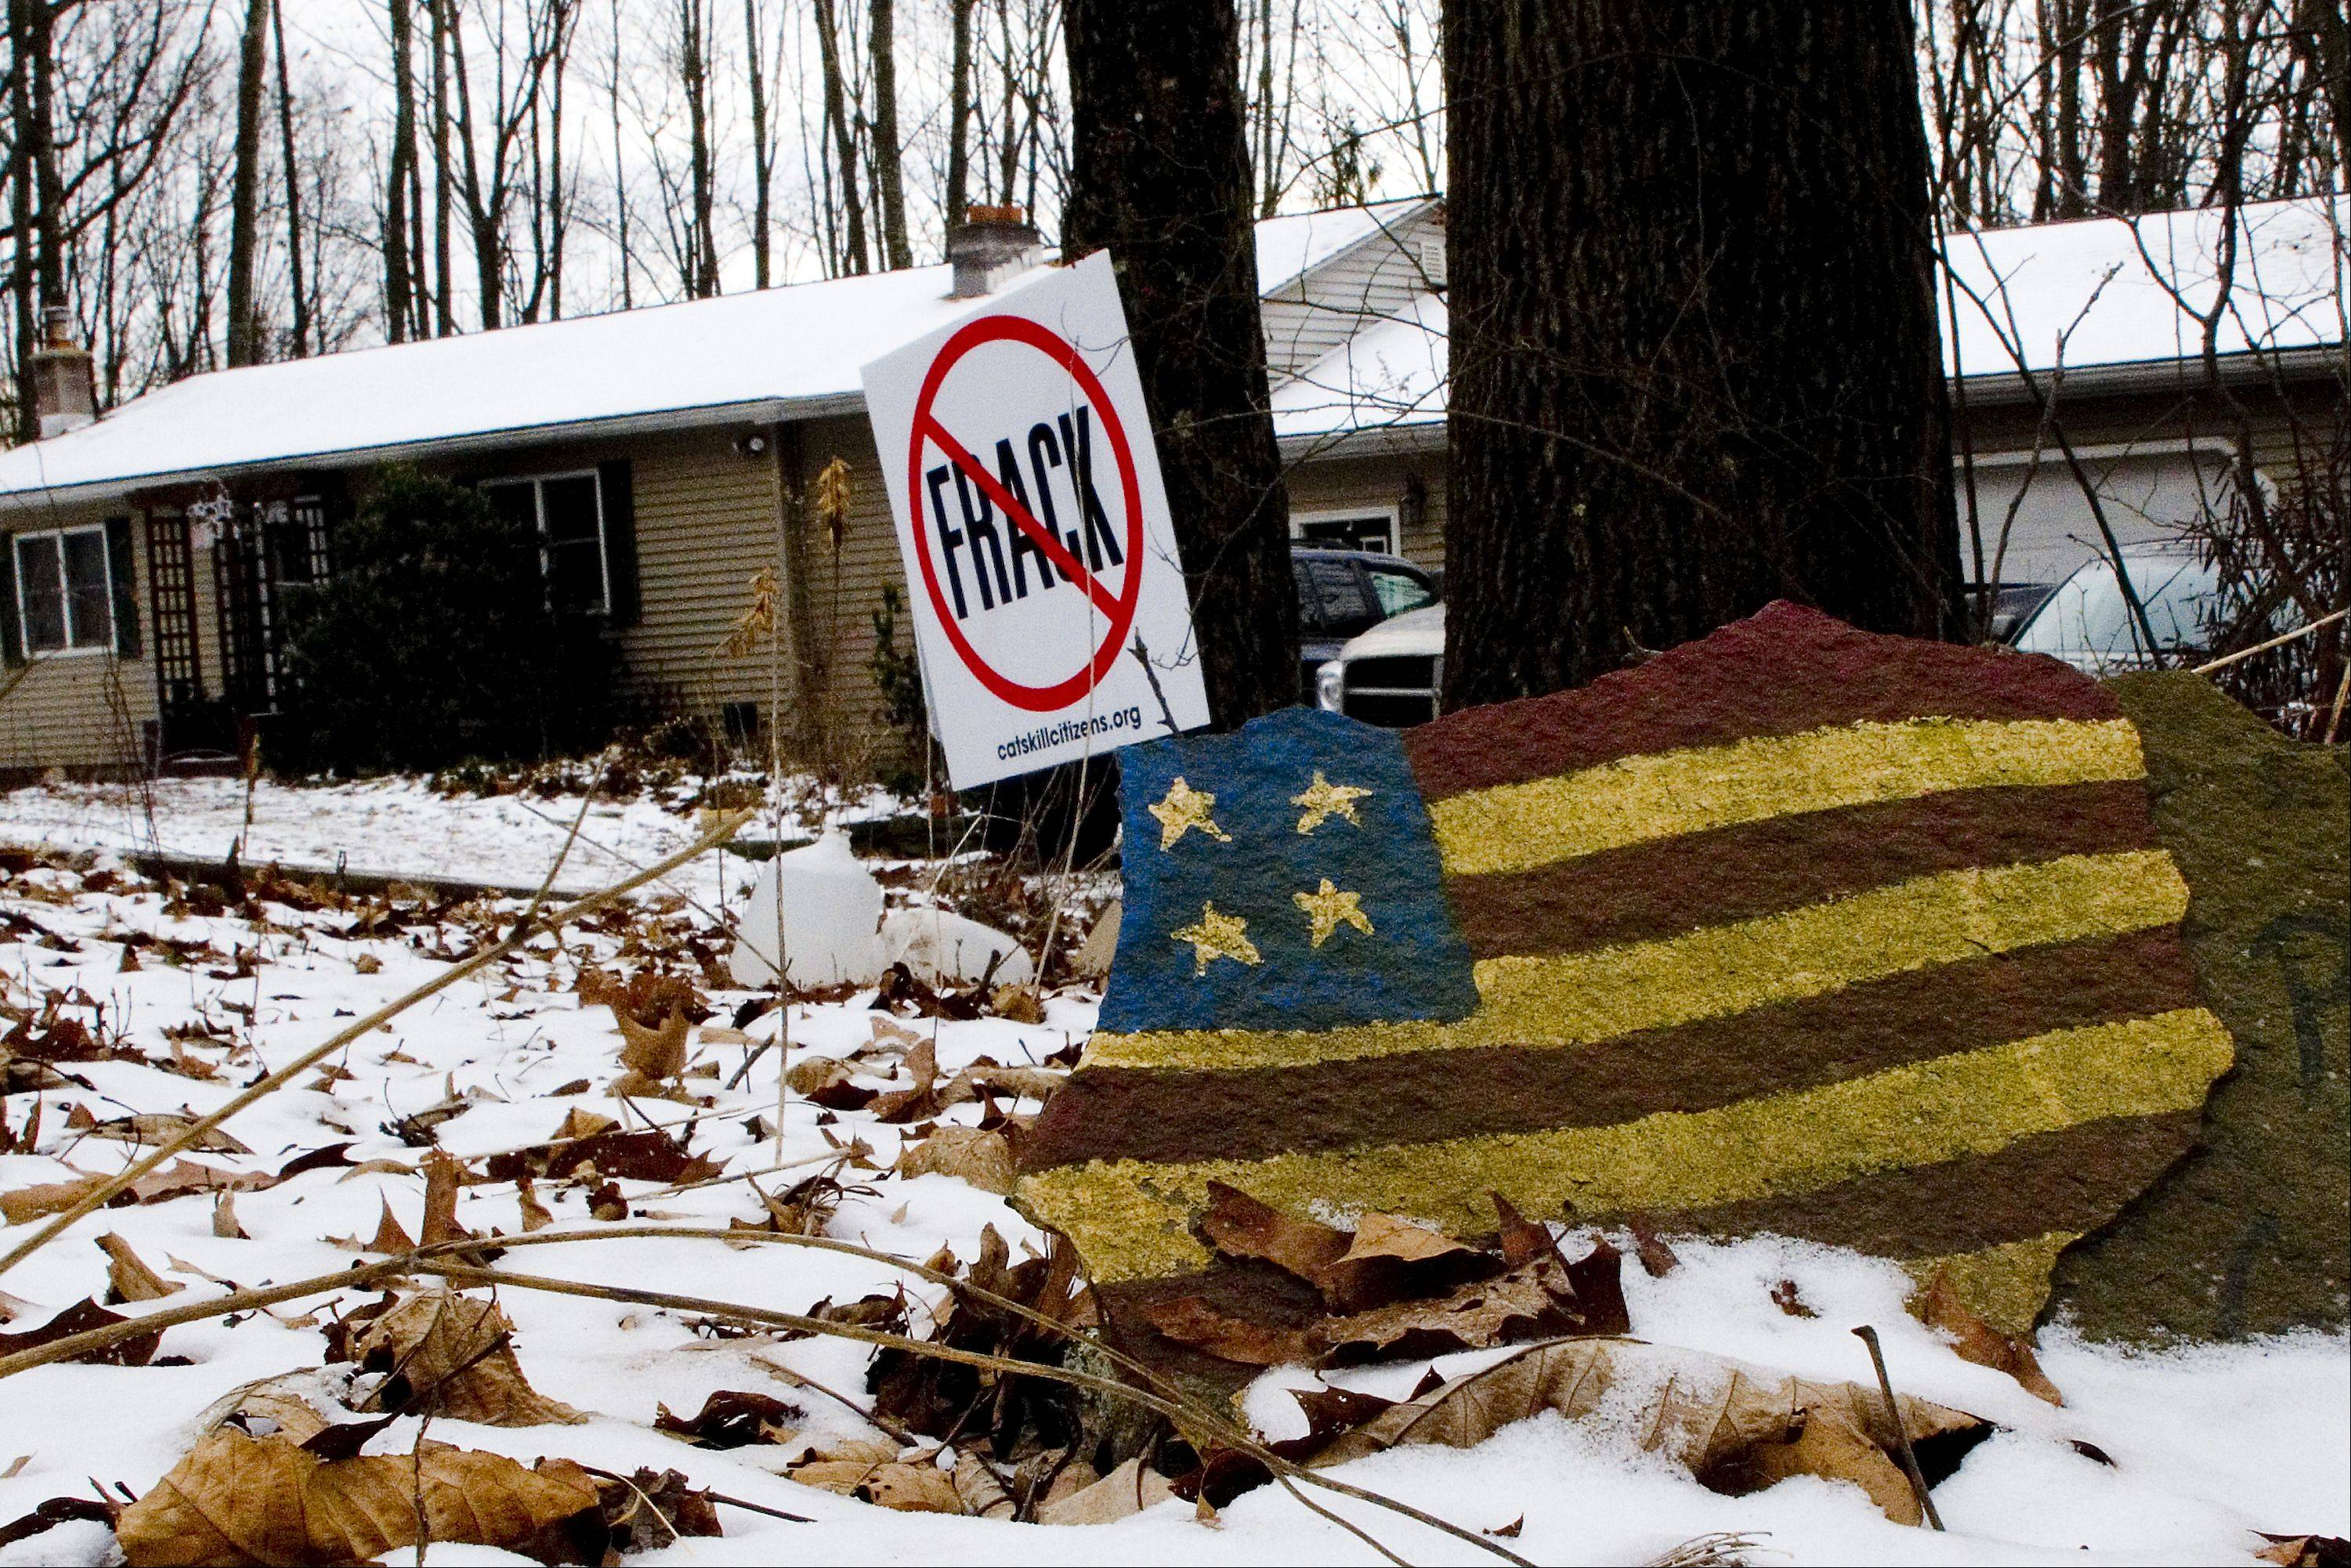 Yard signs to protest the hydraulic fracturing of gas wells are seen at the home of Craig and Julie Sautner in Dimock, Pa.